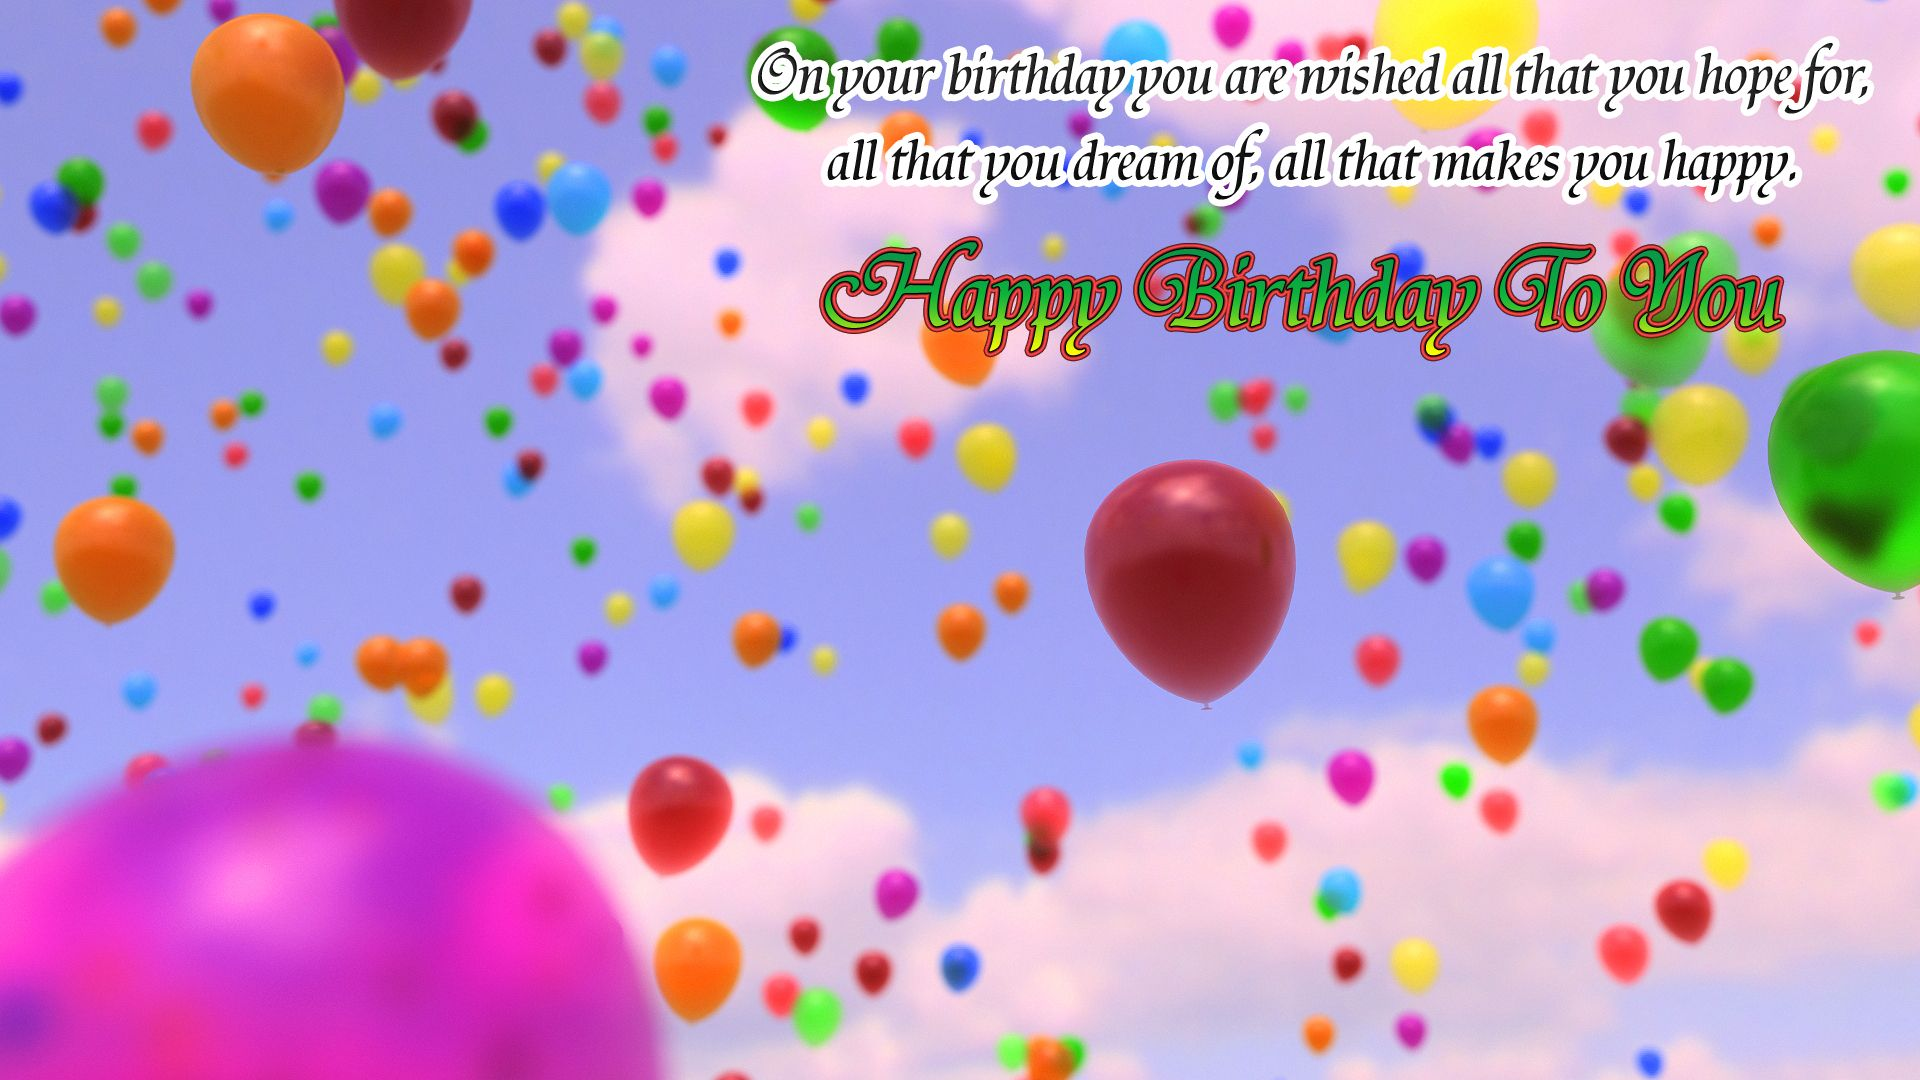 Happy birthday wishes wallpapers find best latest happy birthday happy birthday wishes wallpapers find best latest happy birthday wishes wallpapers in hd for your kristyandbryce Image collections